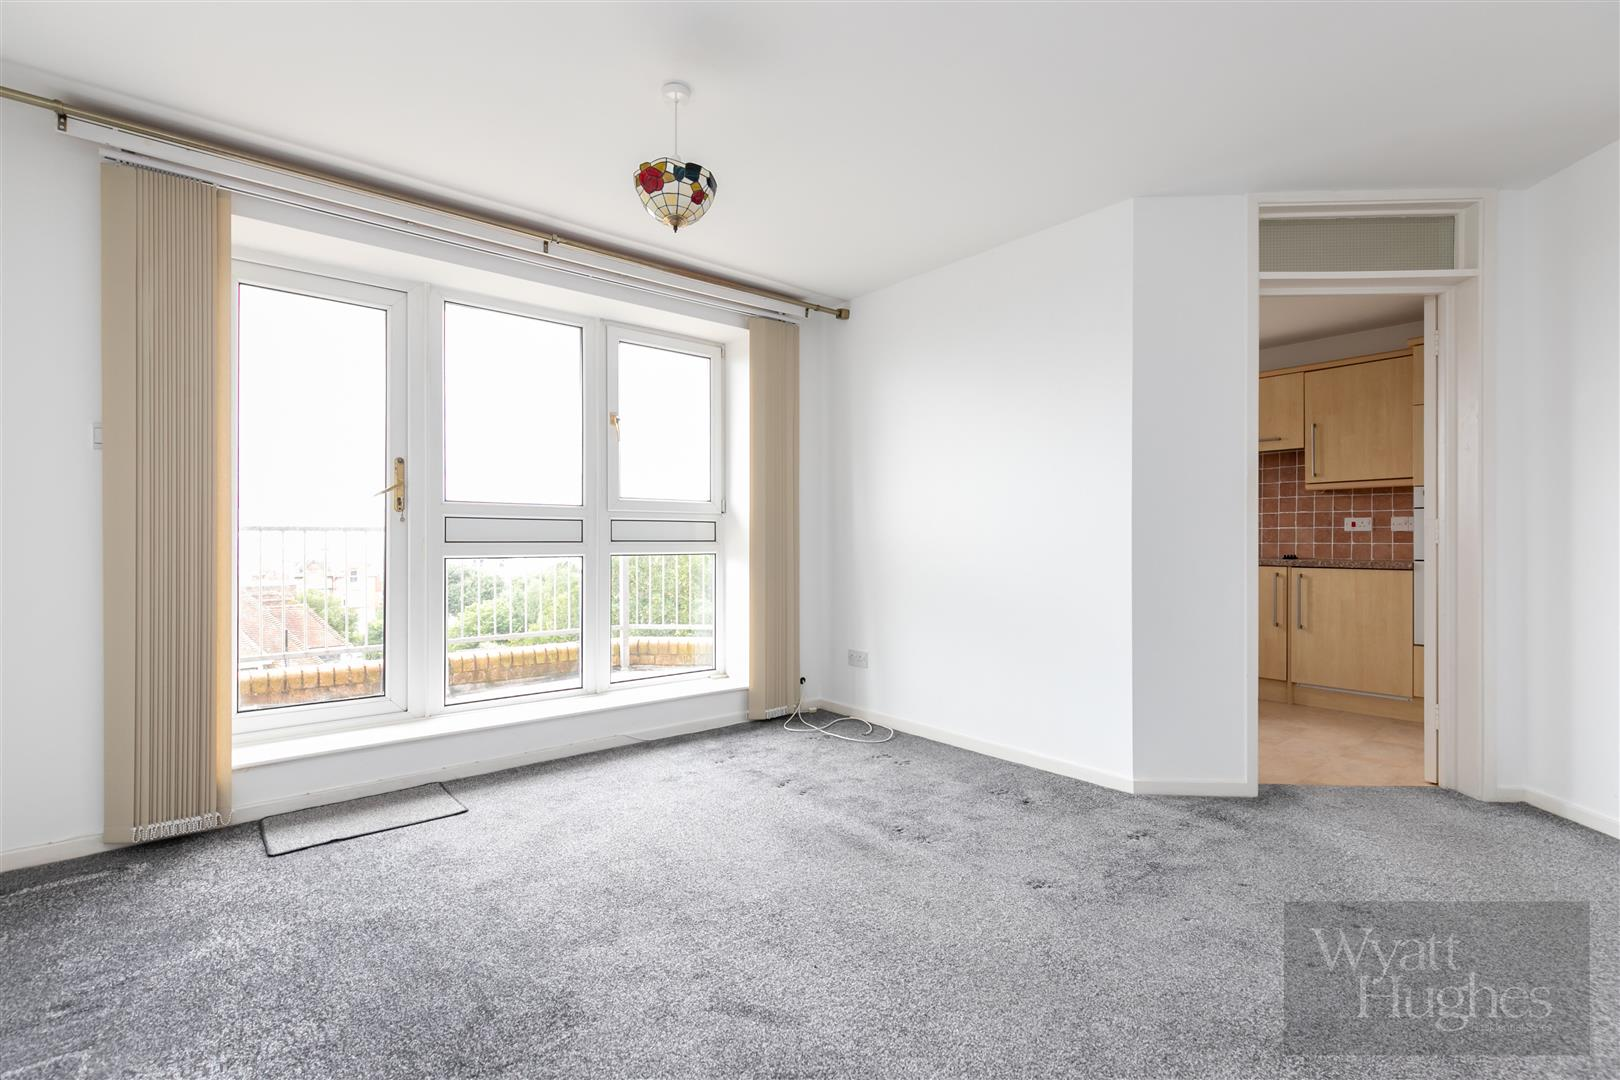 2 bed apartment for sale in Finch Mansions, St. Leonards-On-Sea  - Property Image 2